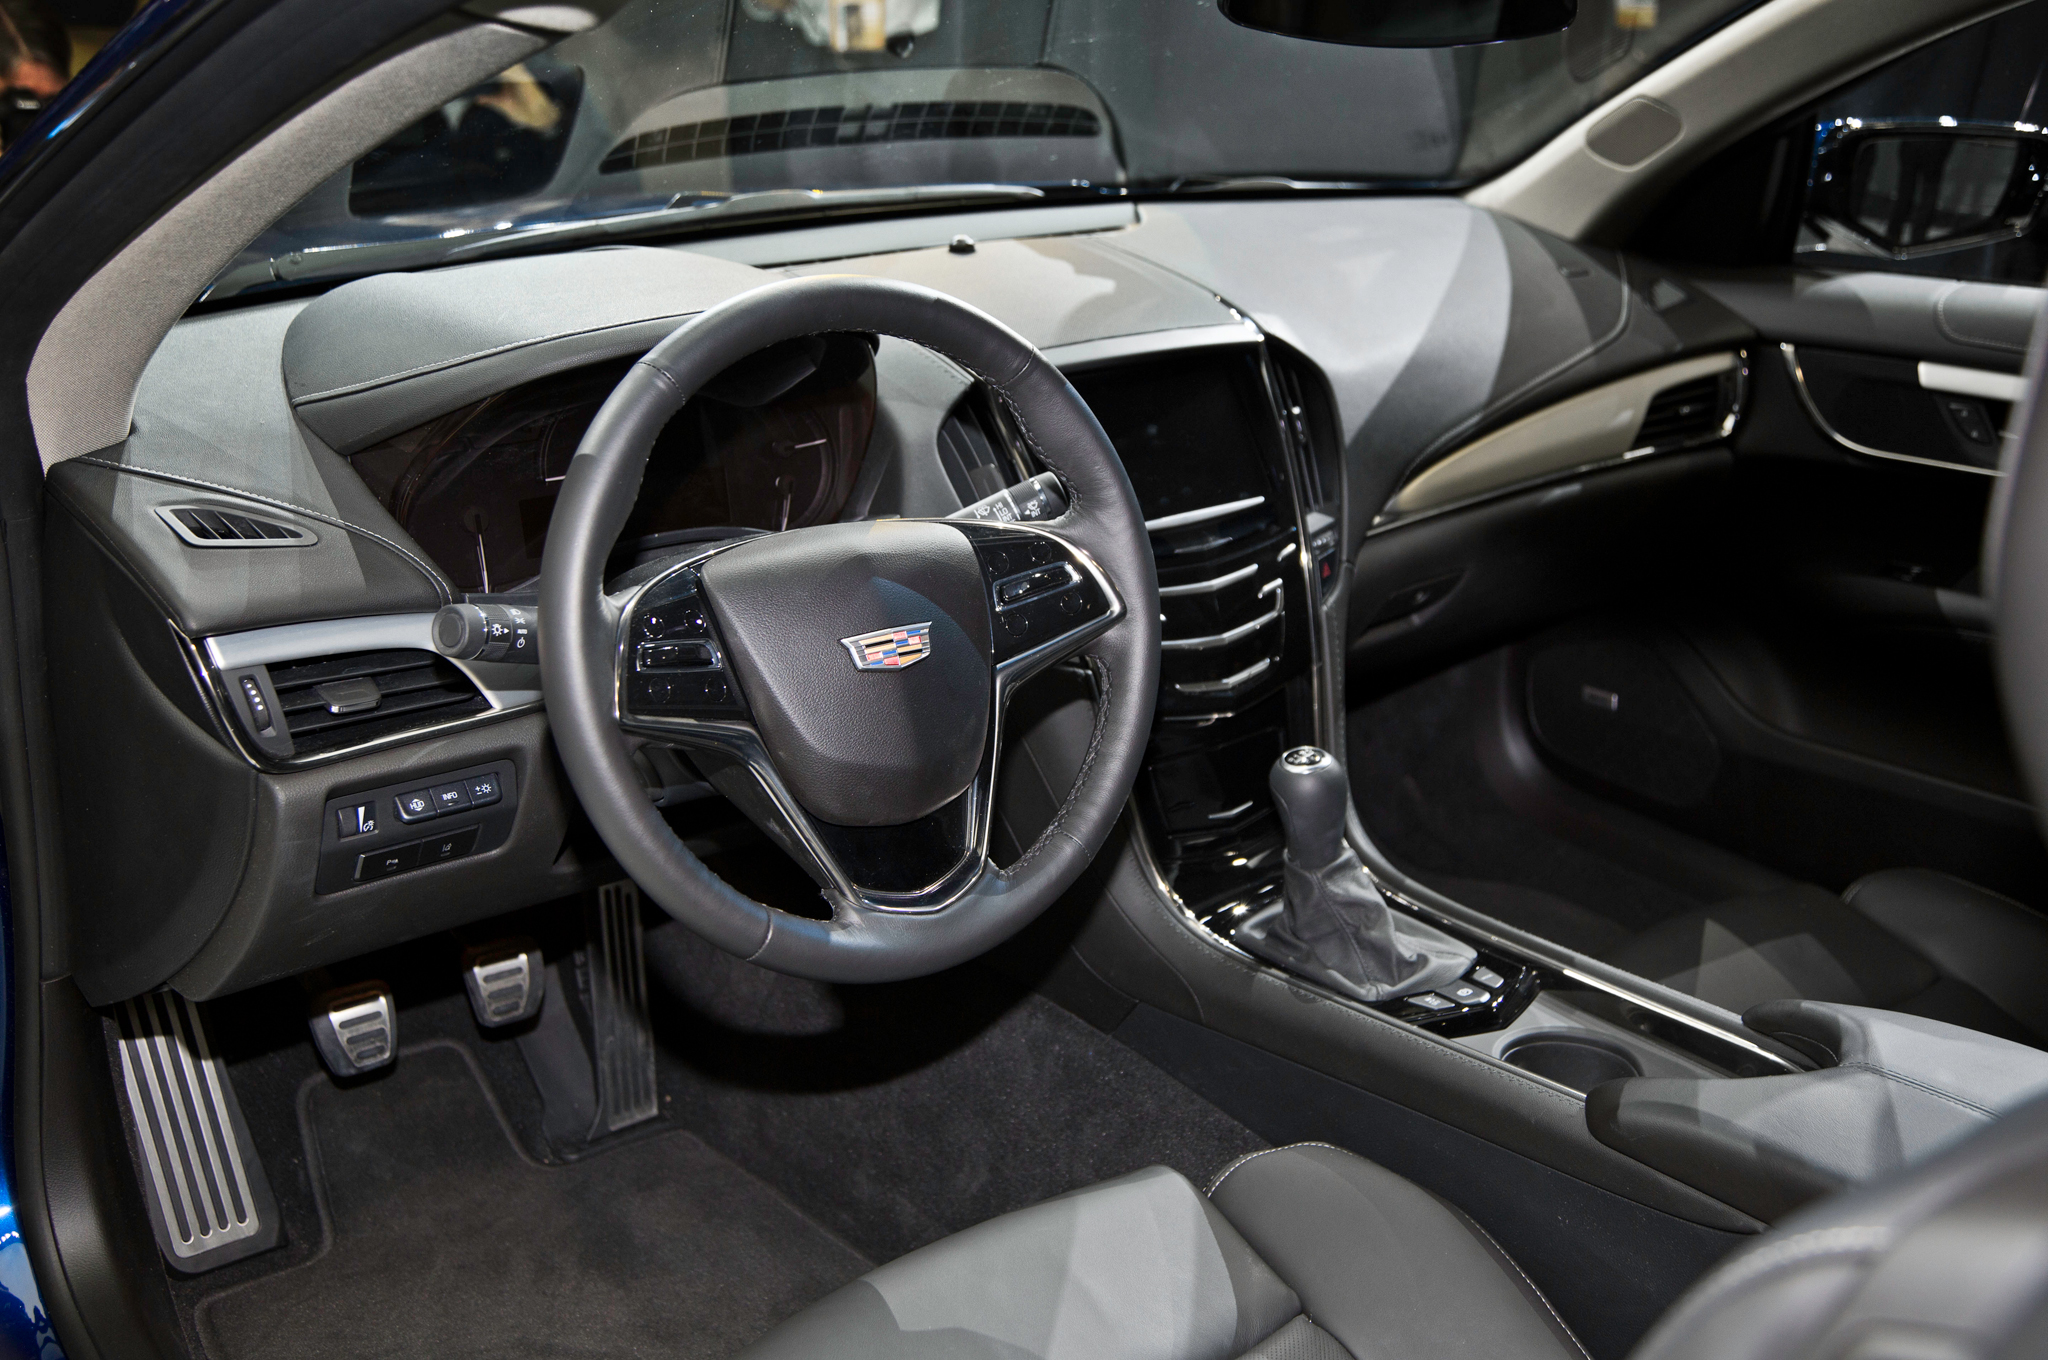 2015 Cadillac Ats Coupe Dashboard And Cockpit (Photo 12 of 21)